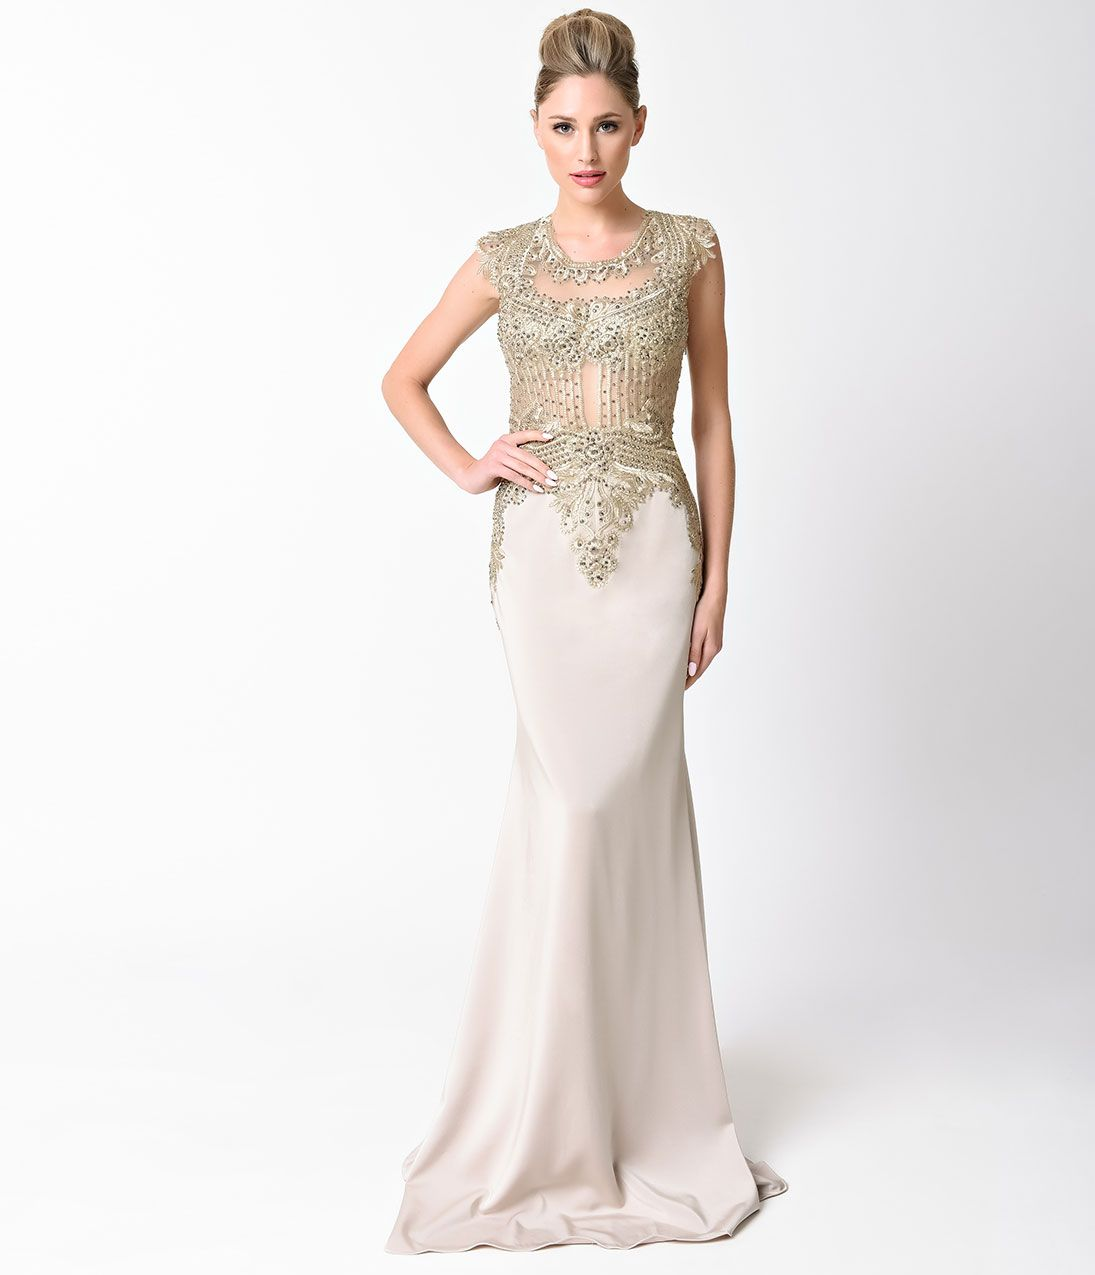 S style dresses pinterest s style s and prom